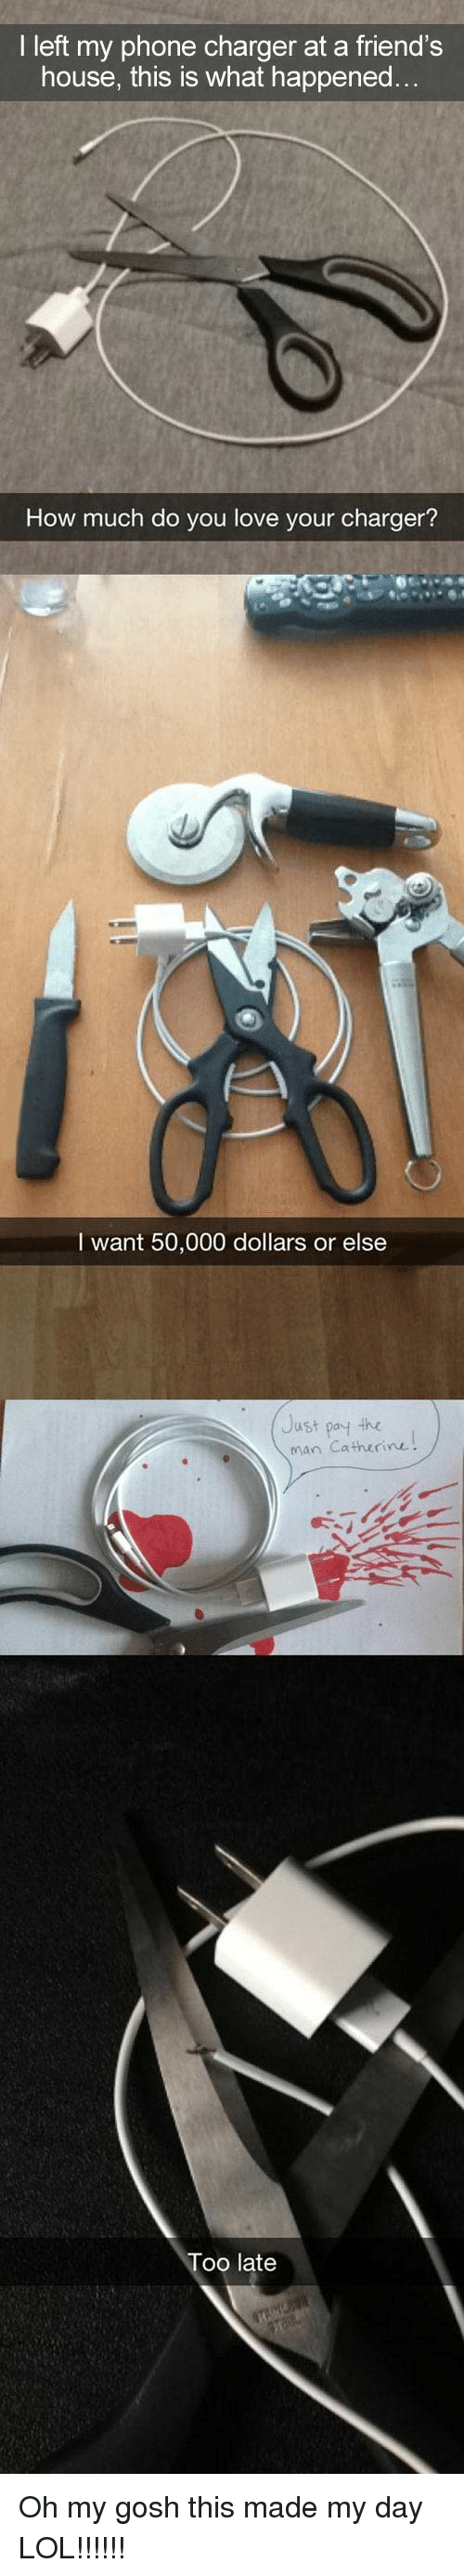 Phone Charger: I left my phone charger at a friend's  house, this is what happened...  How much do you love your charger?  I want 50,000 dollars or else  Just poy the  man Catherine  oo late Oh my gosh this made my day LOL!!!!!!